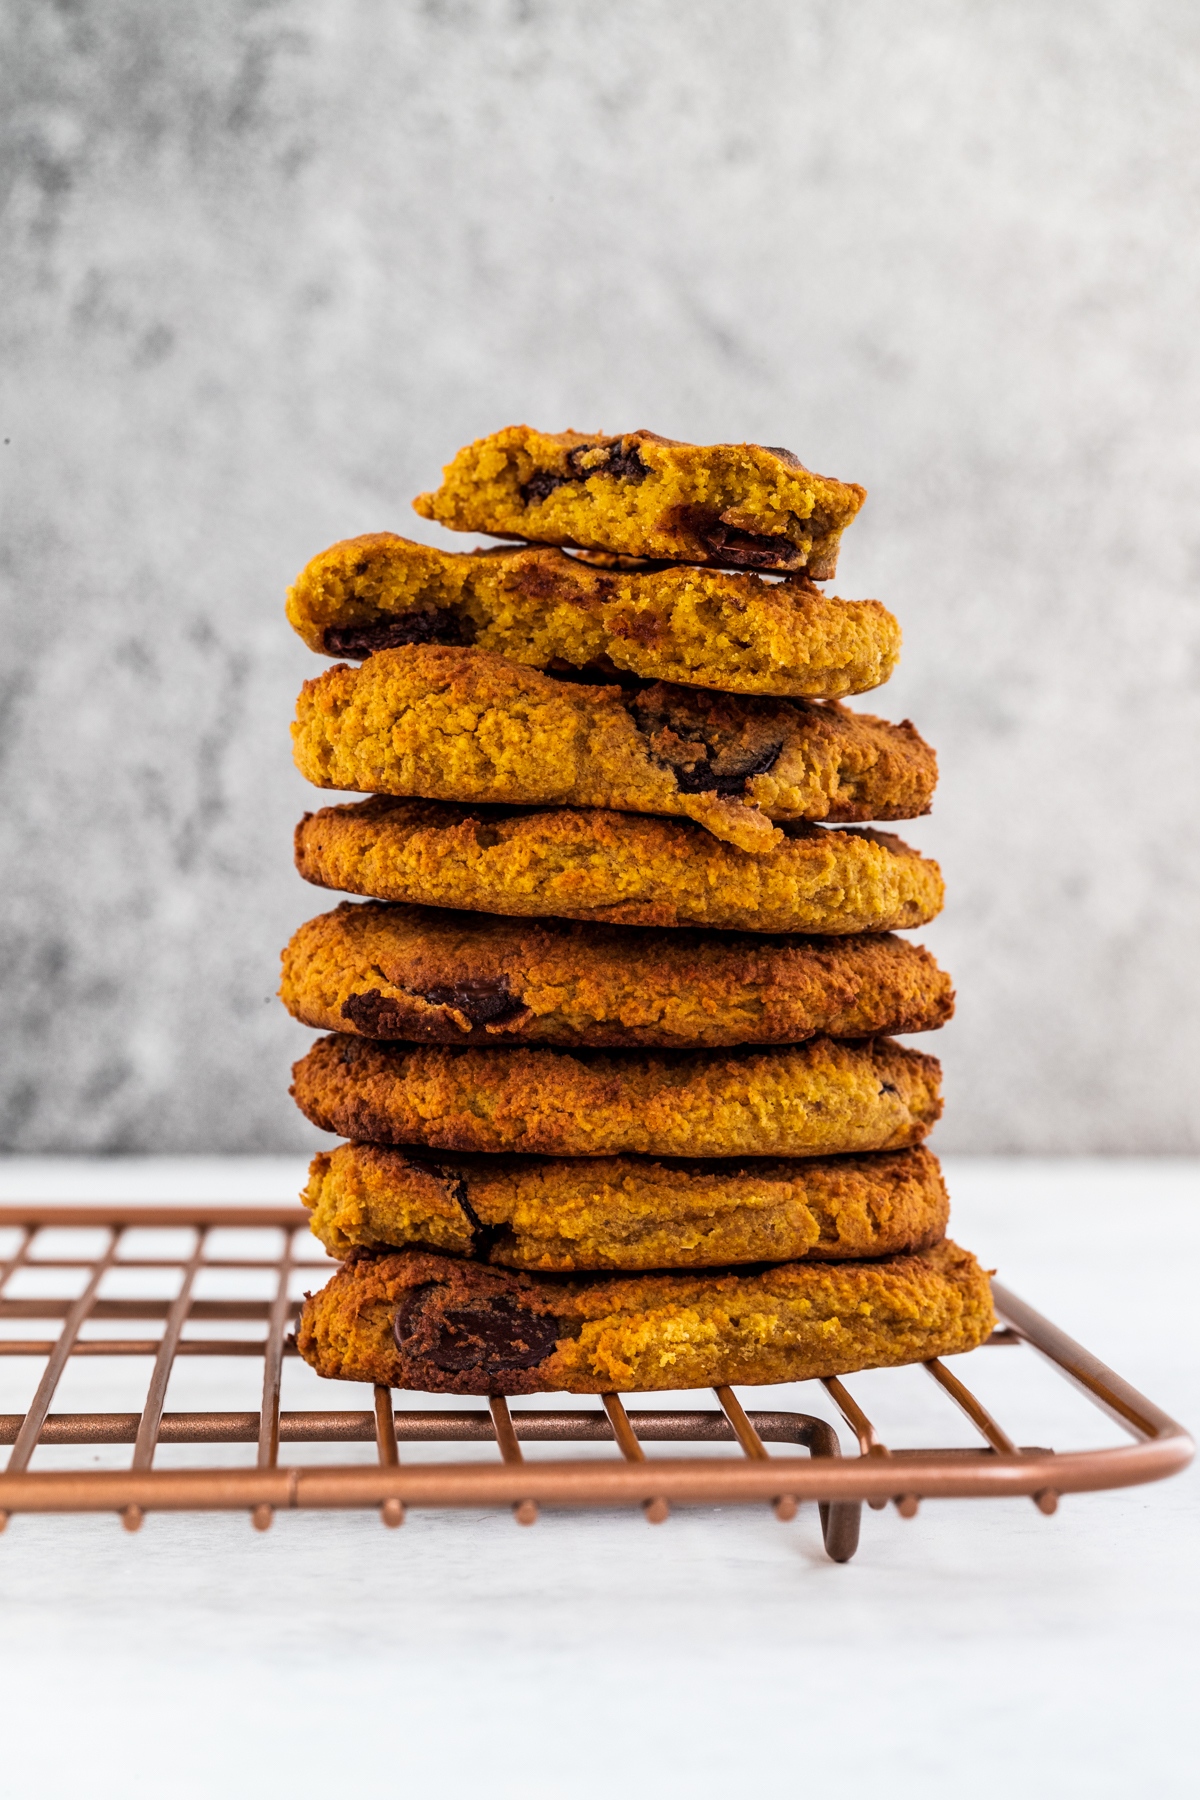 A stack of sweet potato cookies on a rose gold rack and white background